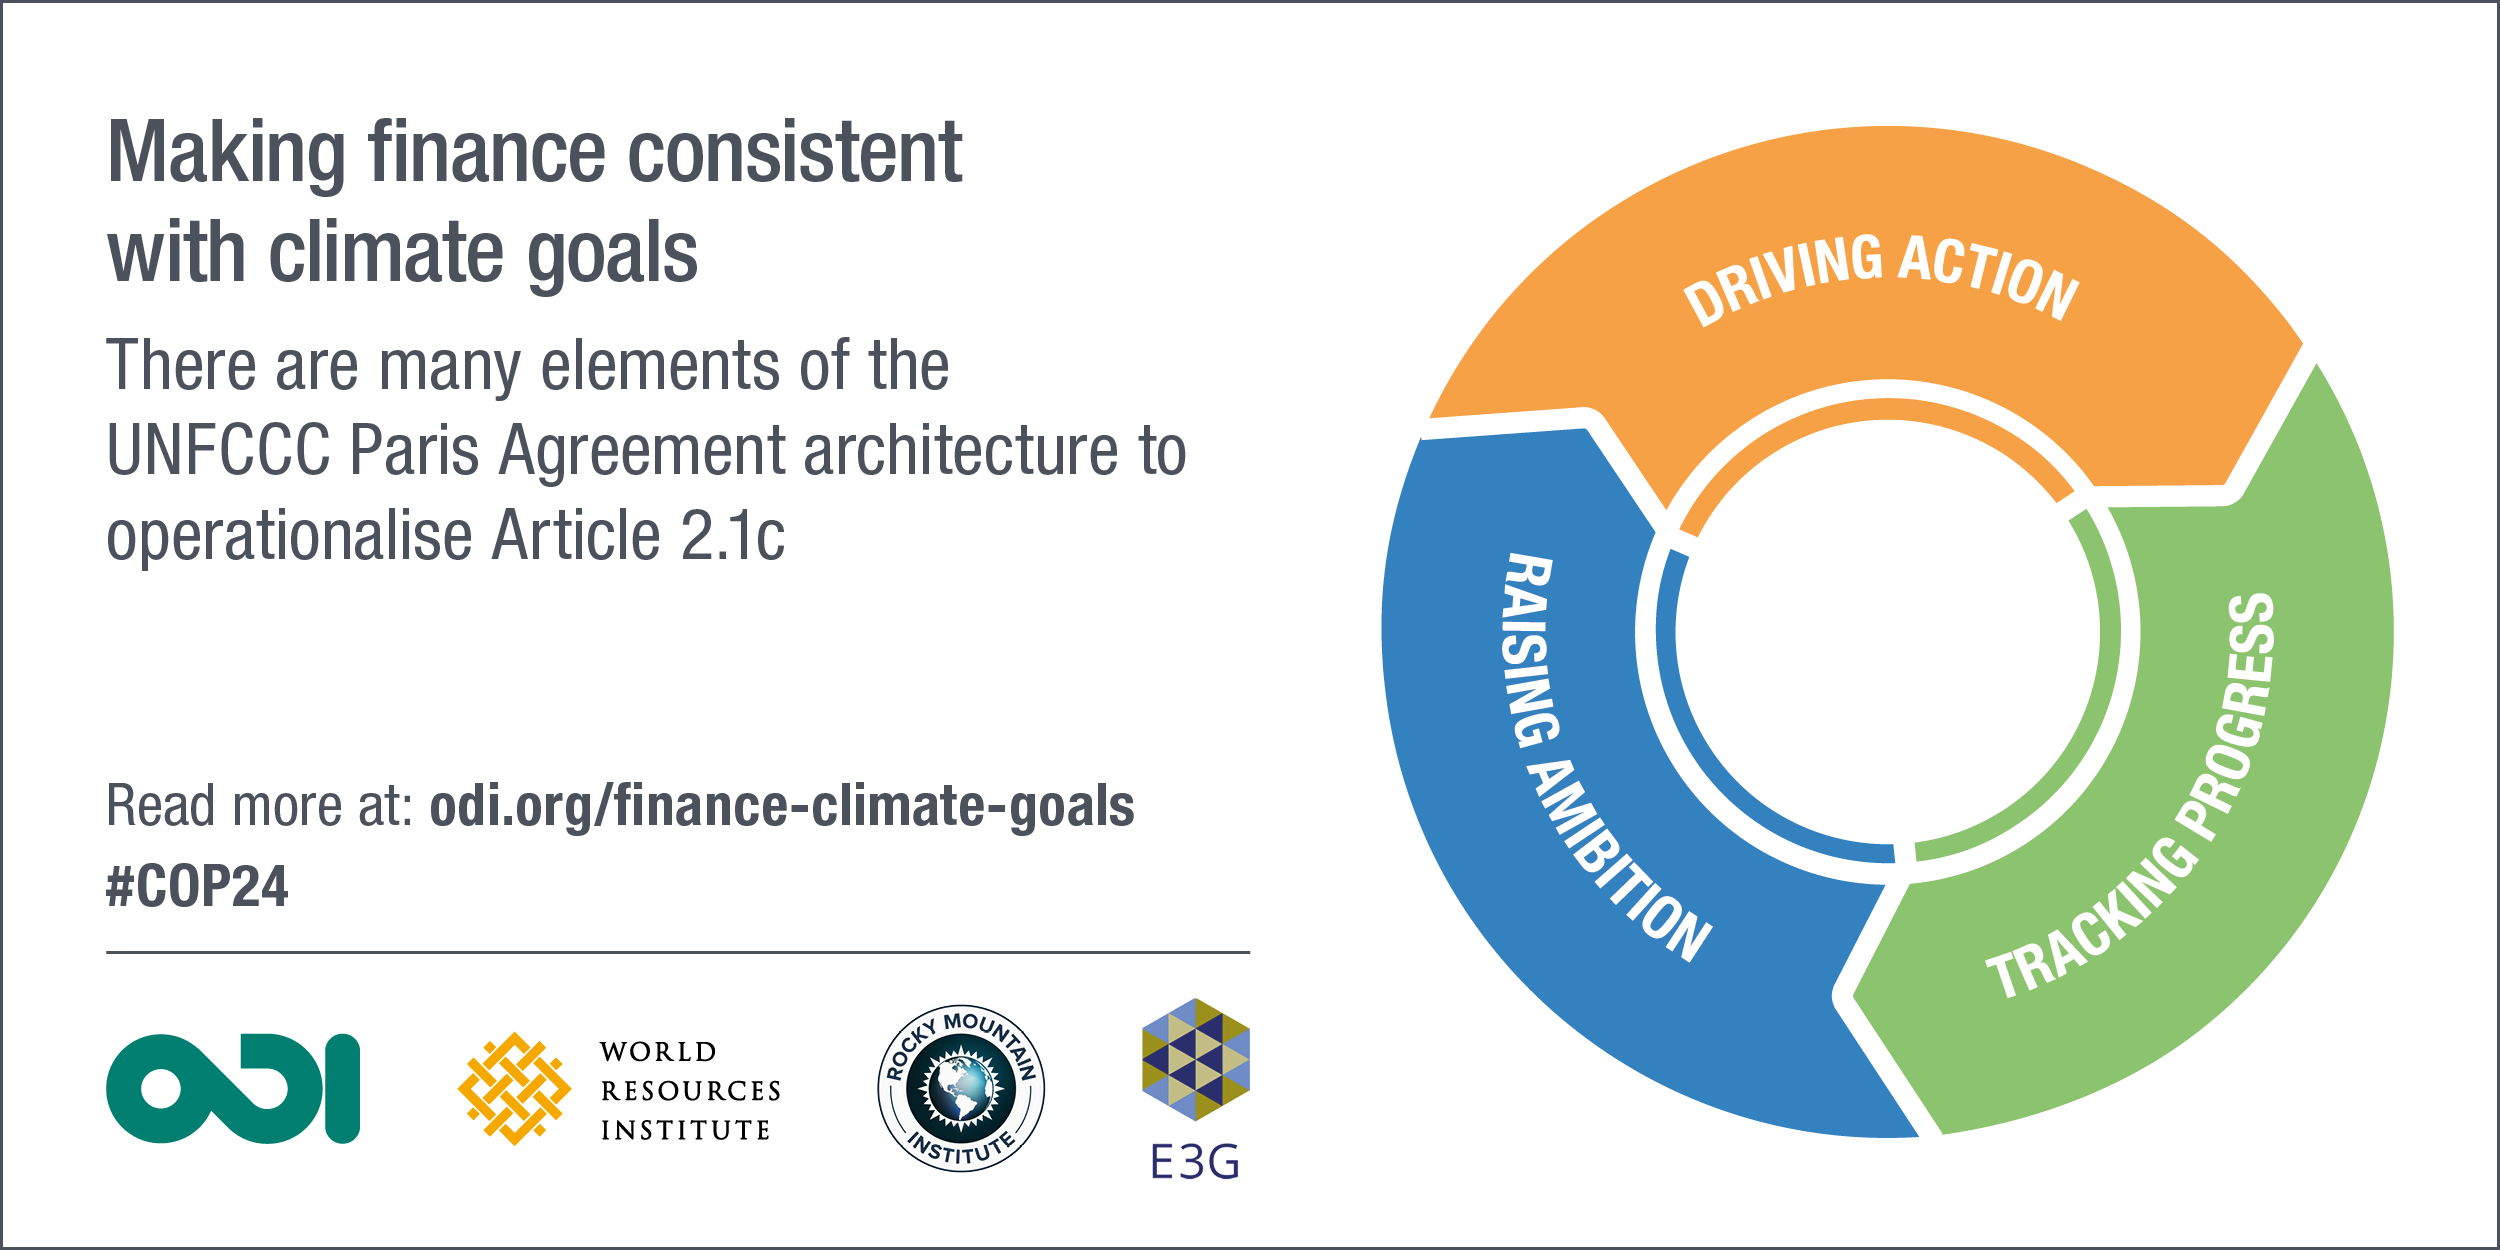 Making finance consistent with climate goals. © ODI 2018